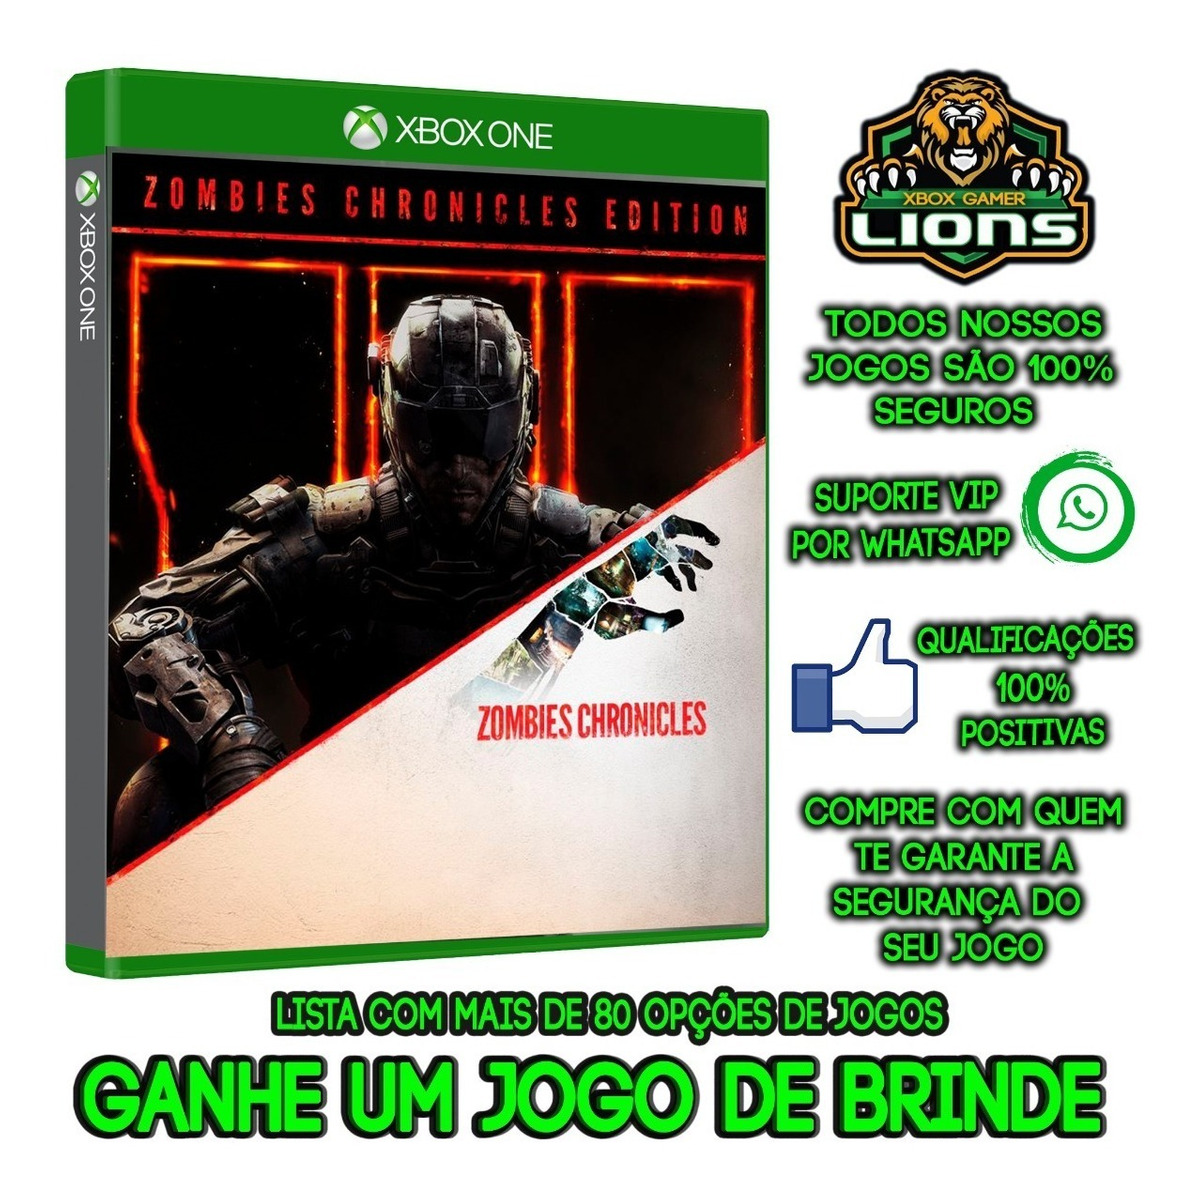 Call Of Duty Black Ops Iii - Z Xbox One Offline +brinde